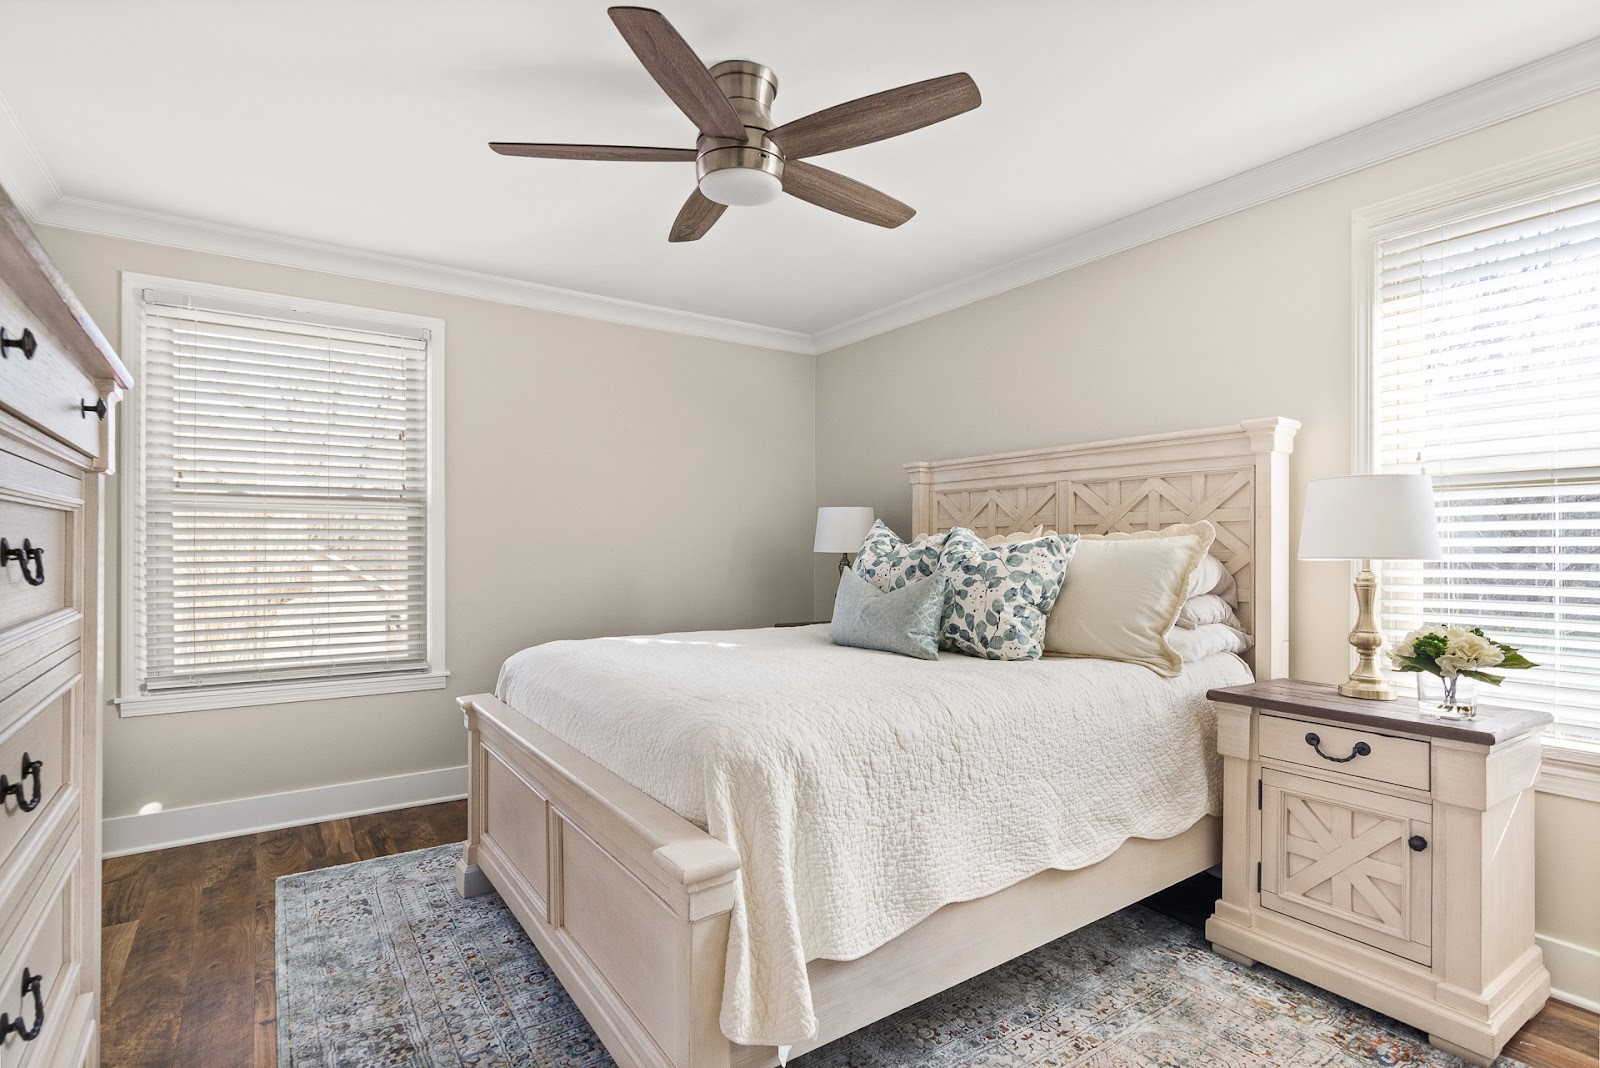 Superior construction and design Lebanon, TN 1970s Ranch Reno bright bedroom with rustic white bedroom set